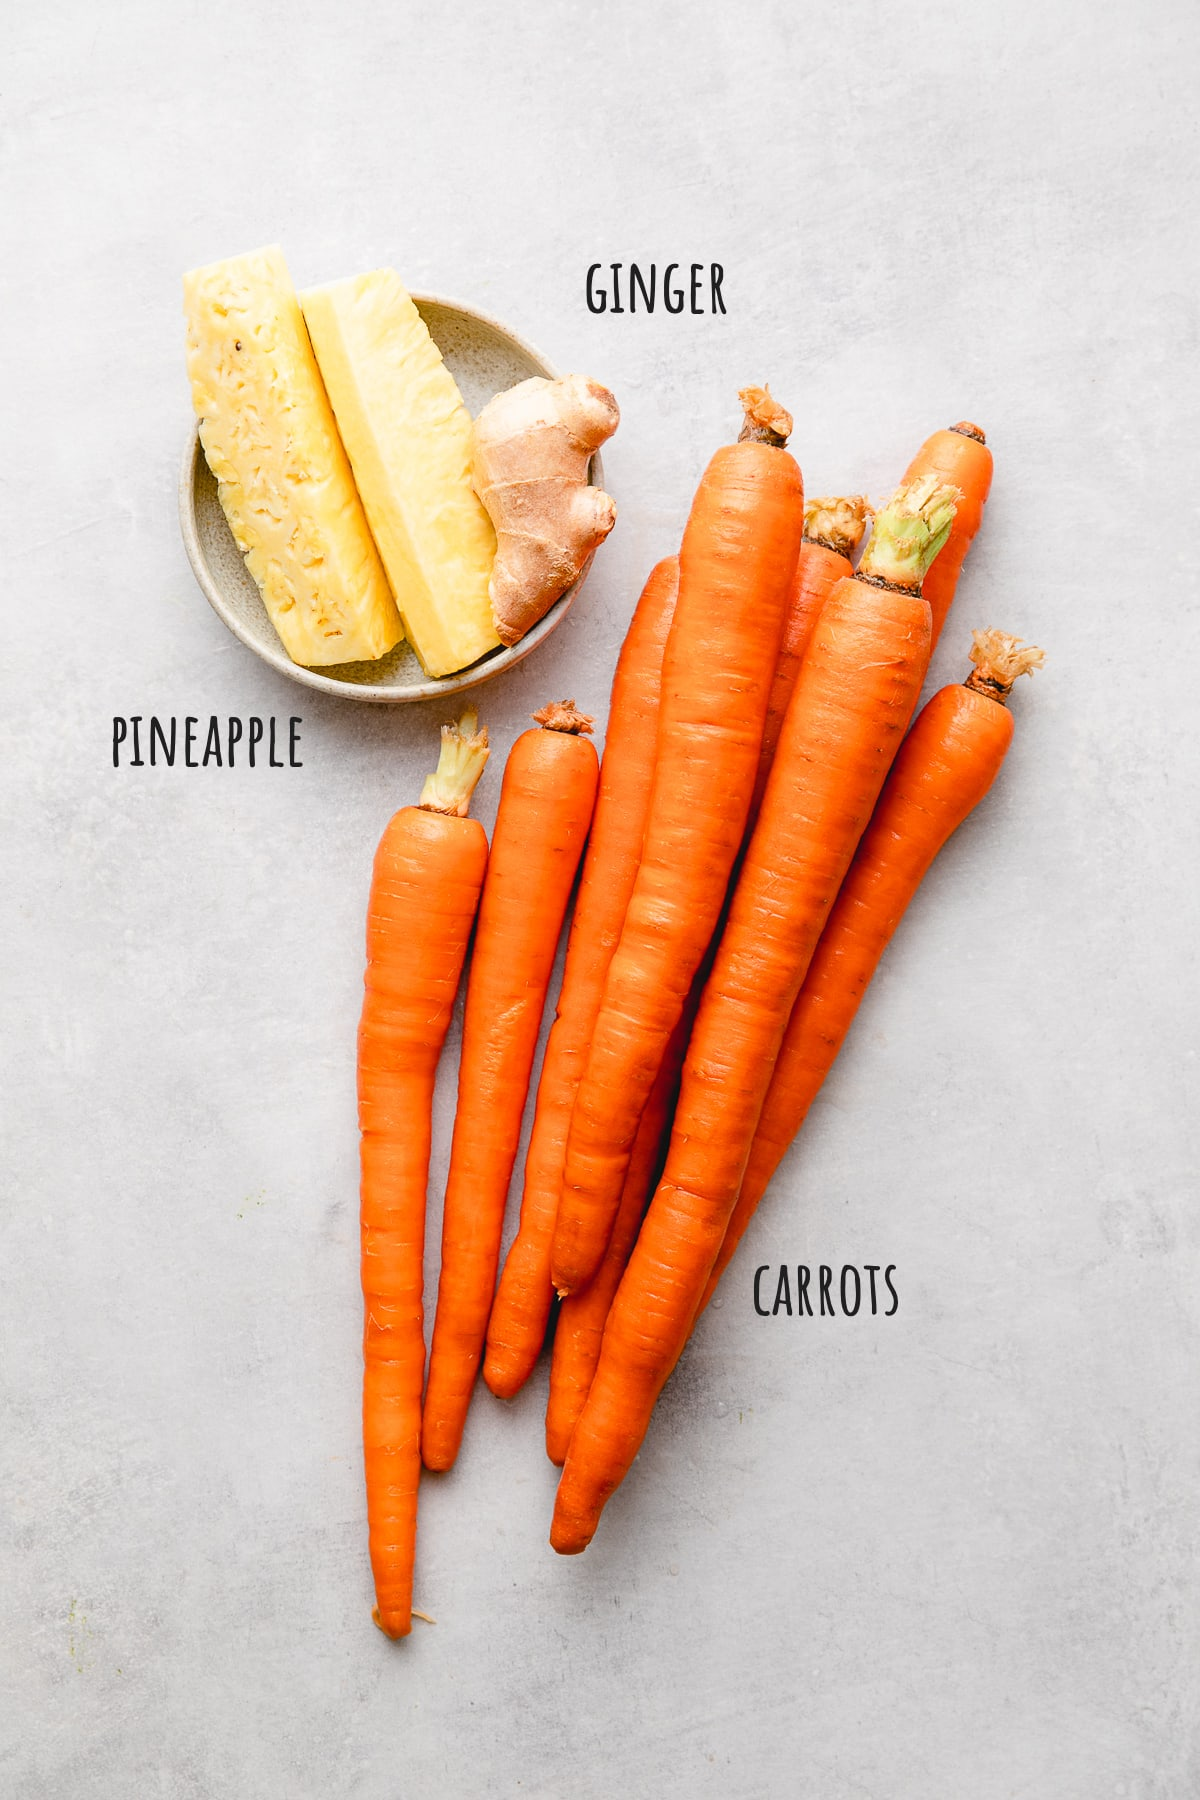 top down view of ingredients used to make carrot juice with pineapple and giner.